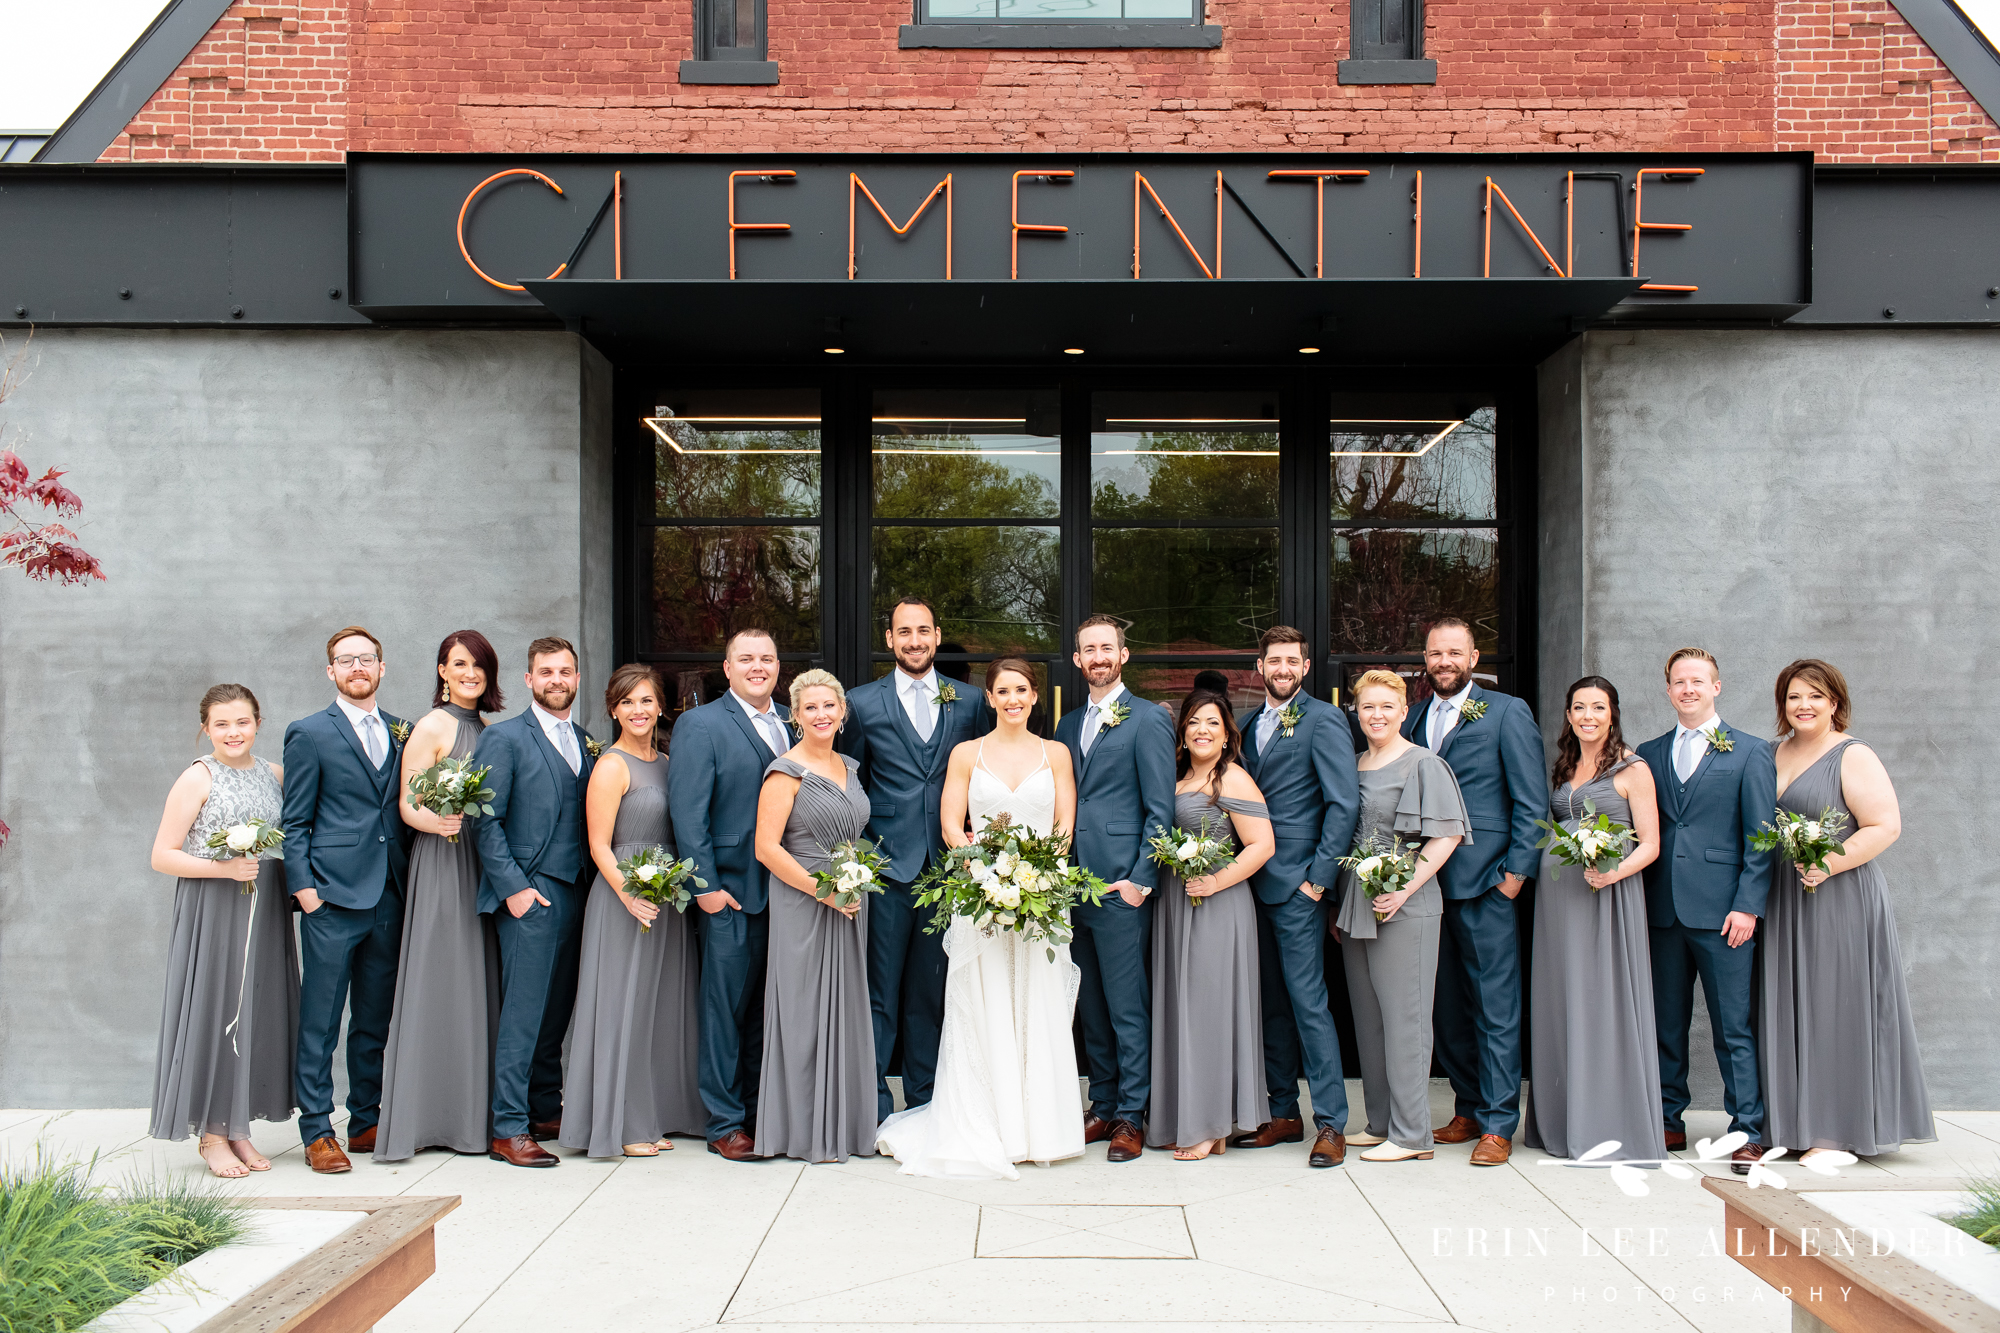 Clementine-Wedding-Photograph